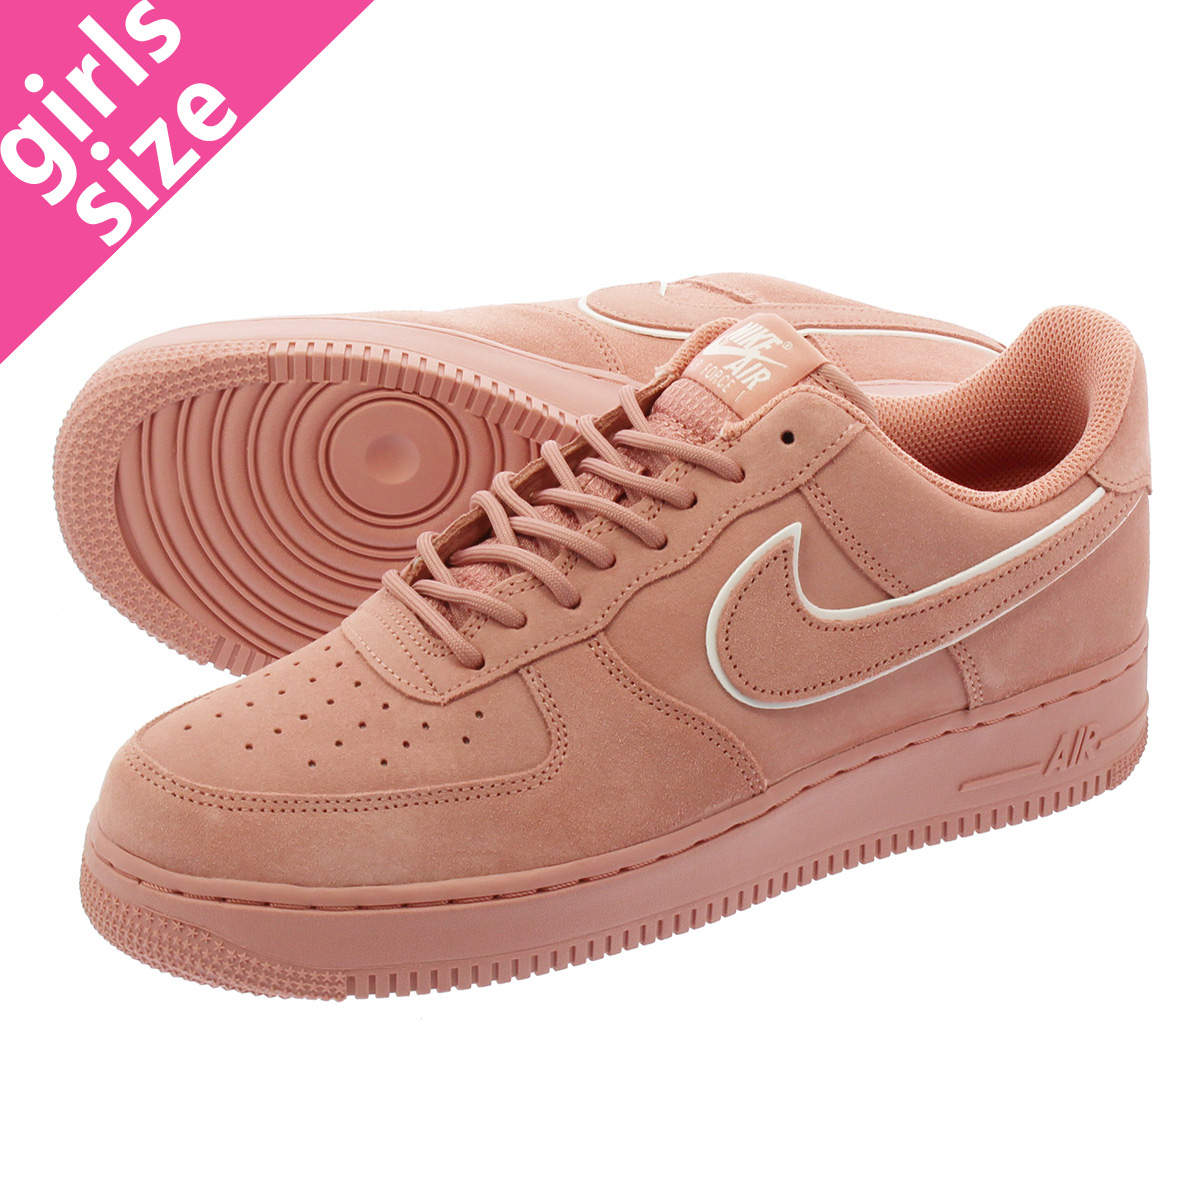 184fb561bfbba LOWTEX PLUS: NIKE AIR FORCE 1 '07 LV8 SUEDE Nike air force 1 '07 LV8 ...